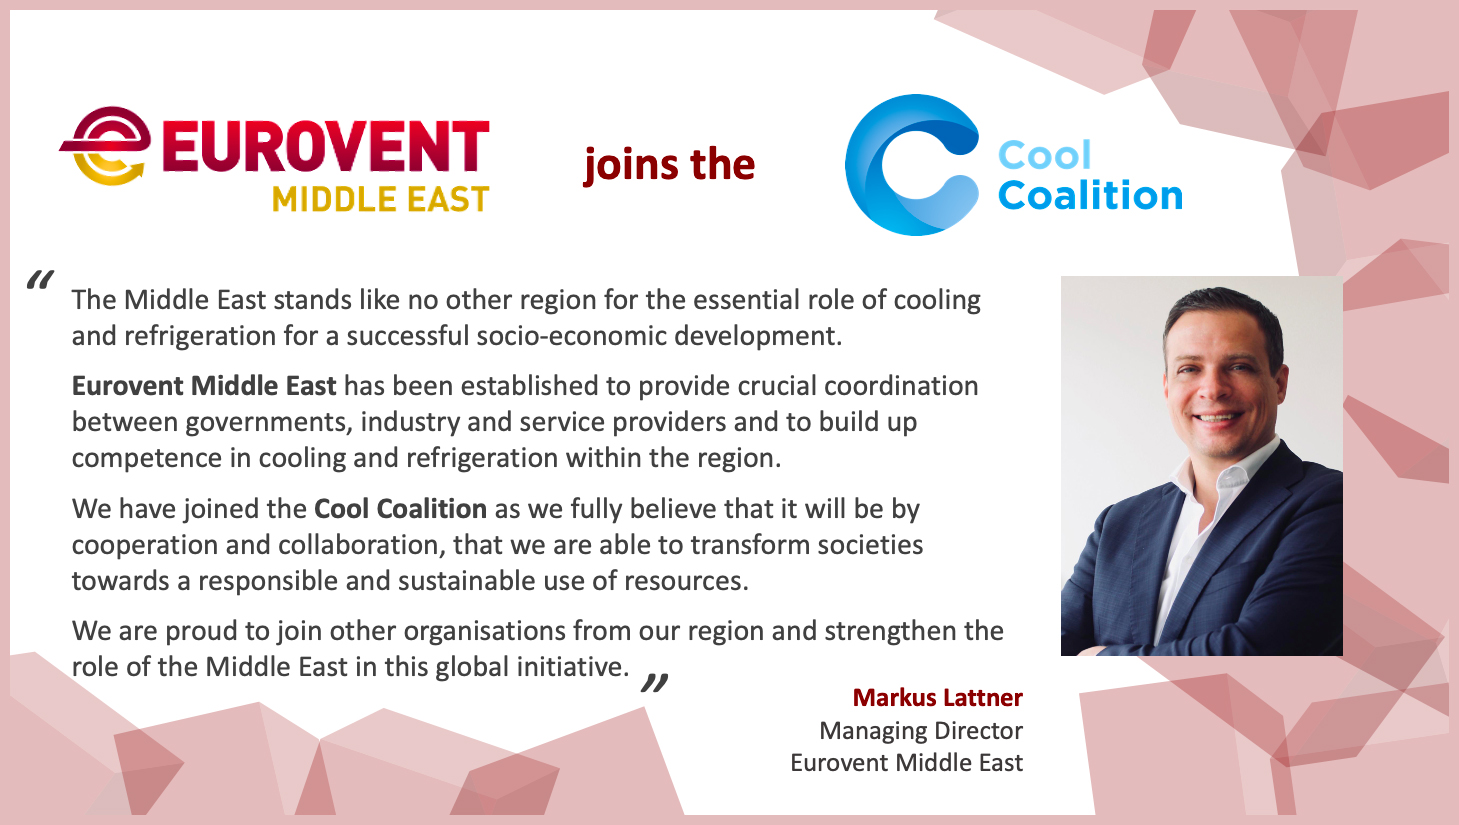 2021 - Eurovent Middle East joins UN Cool Coalition